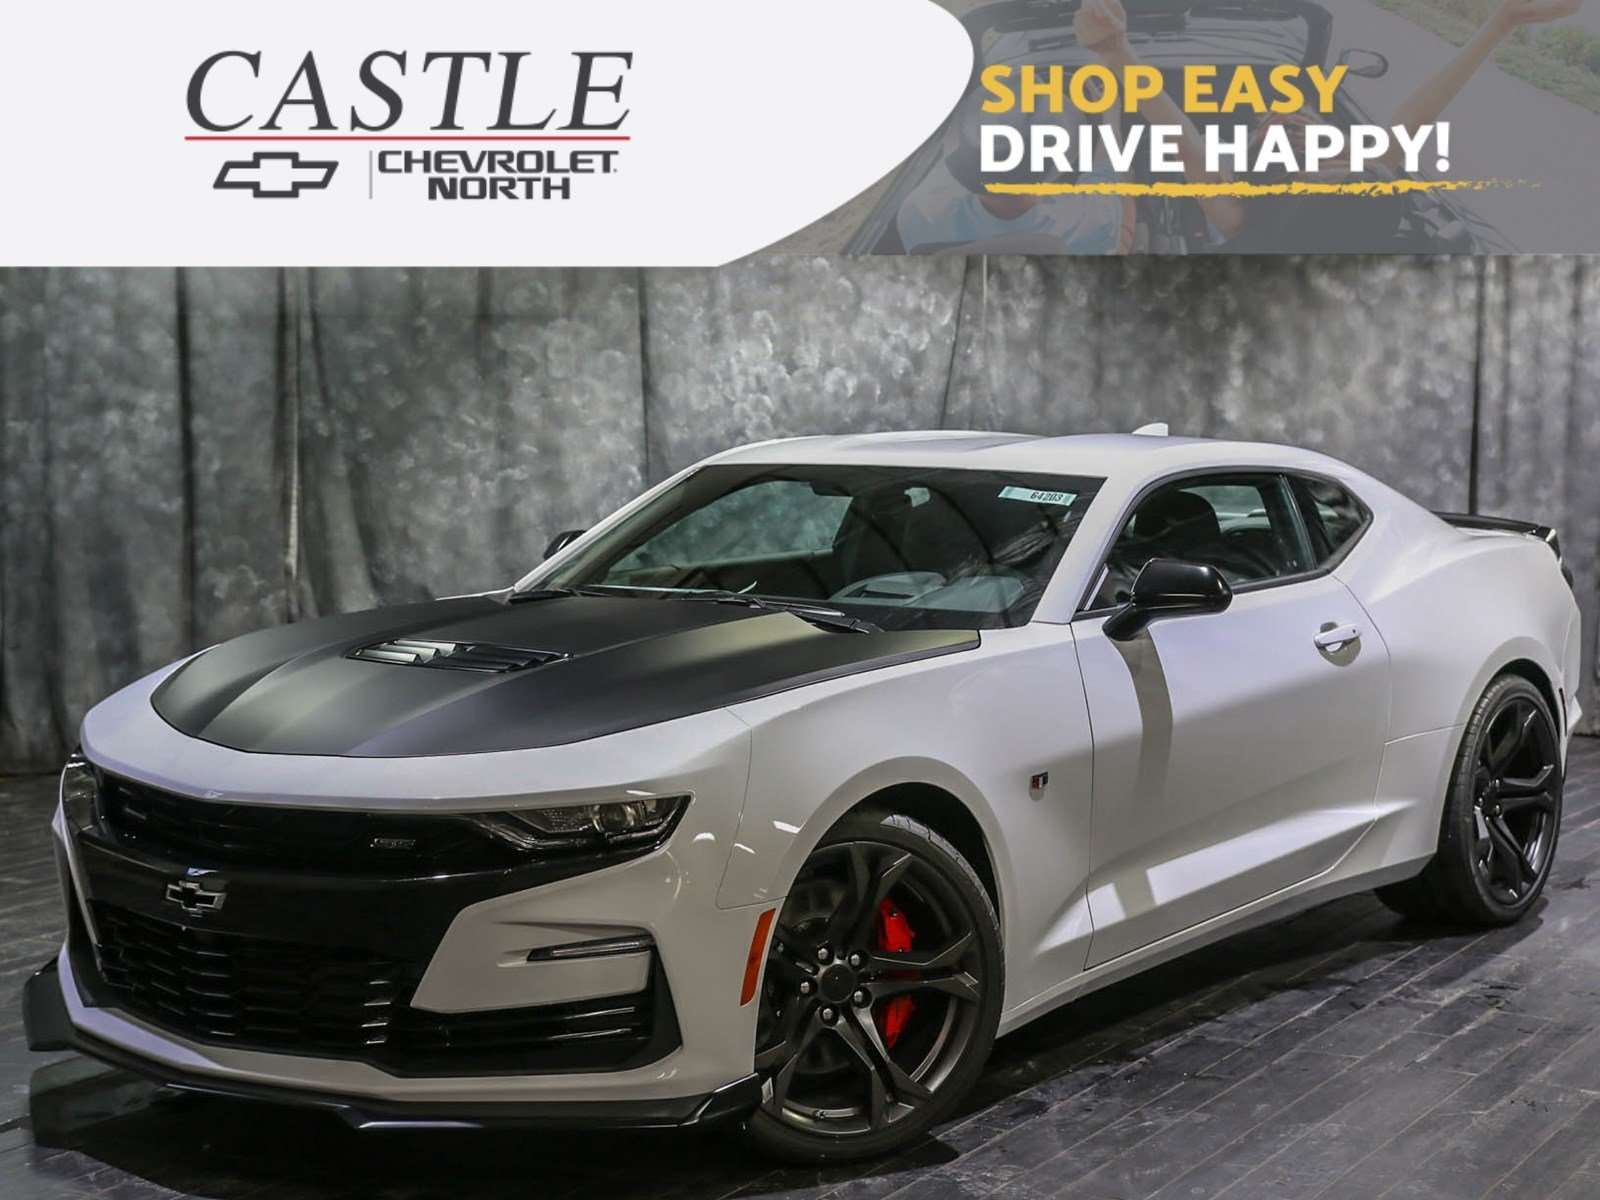 New 2019 Chevrolet Camaro 1ss 2dr Car In Villa Park 64203 Castle